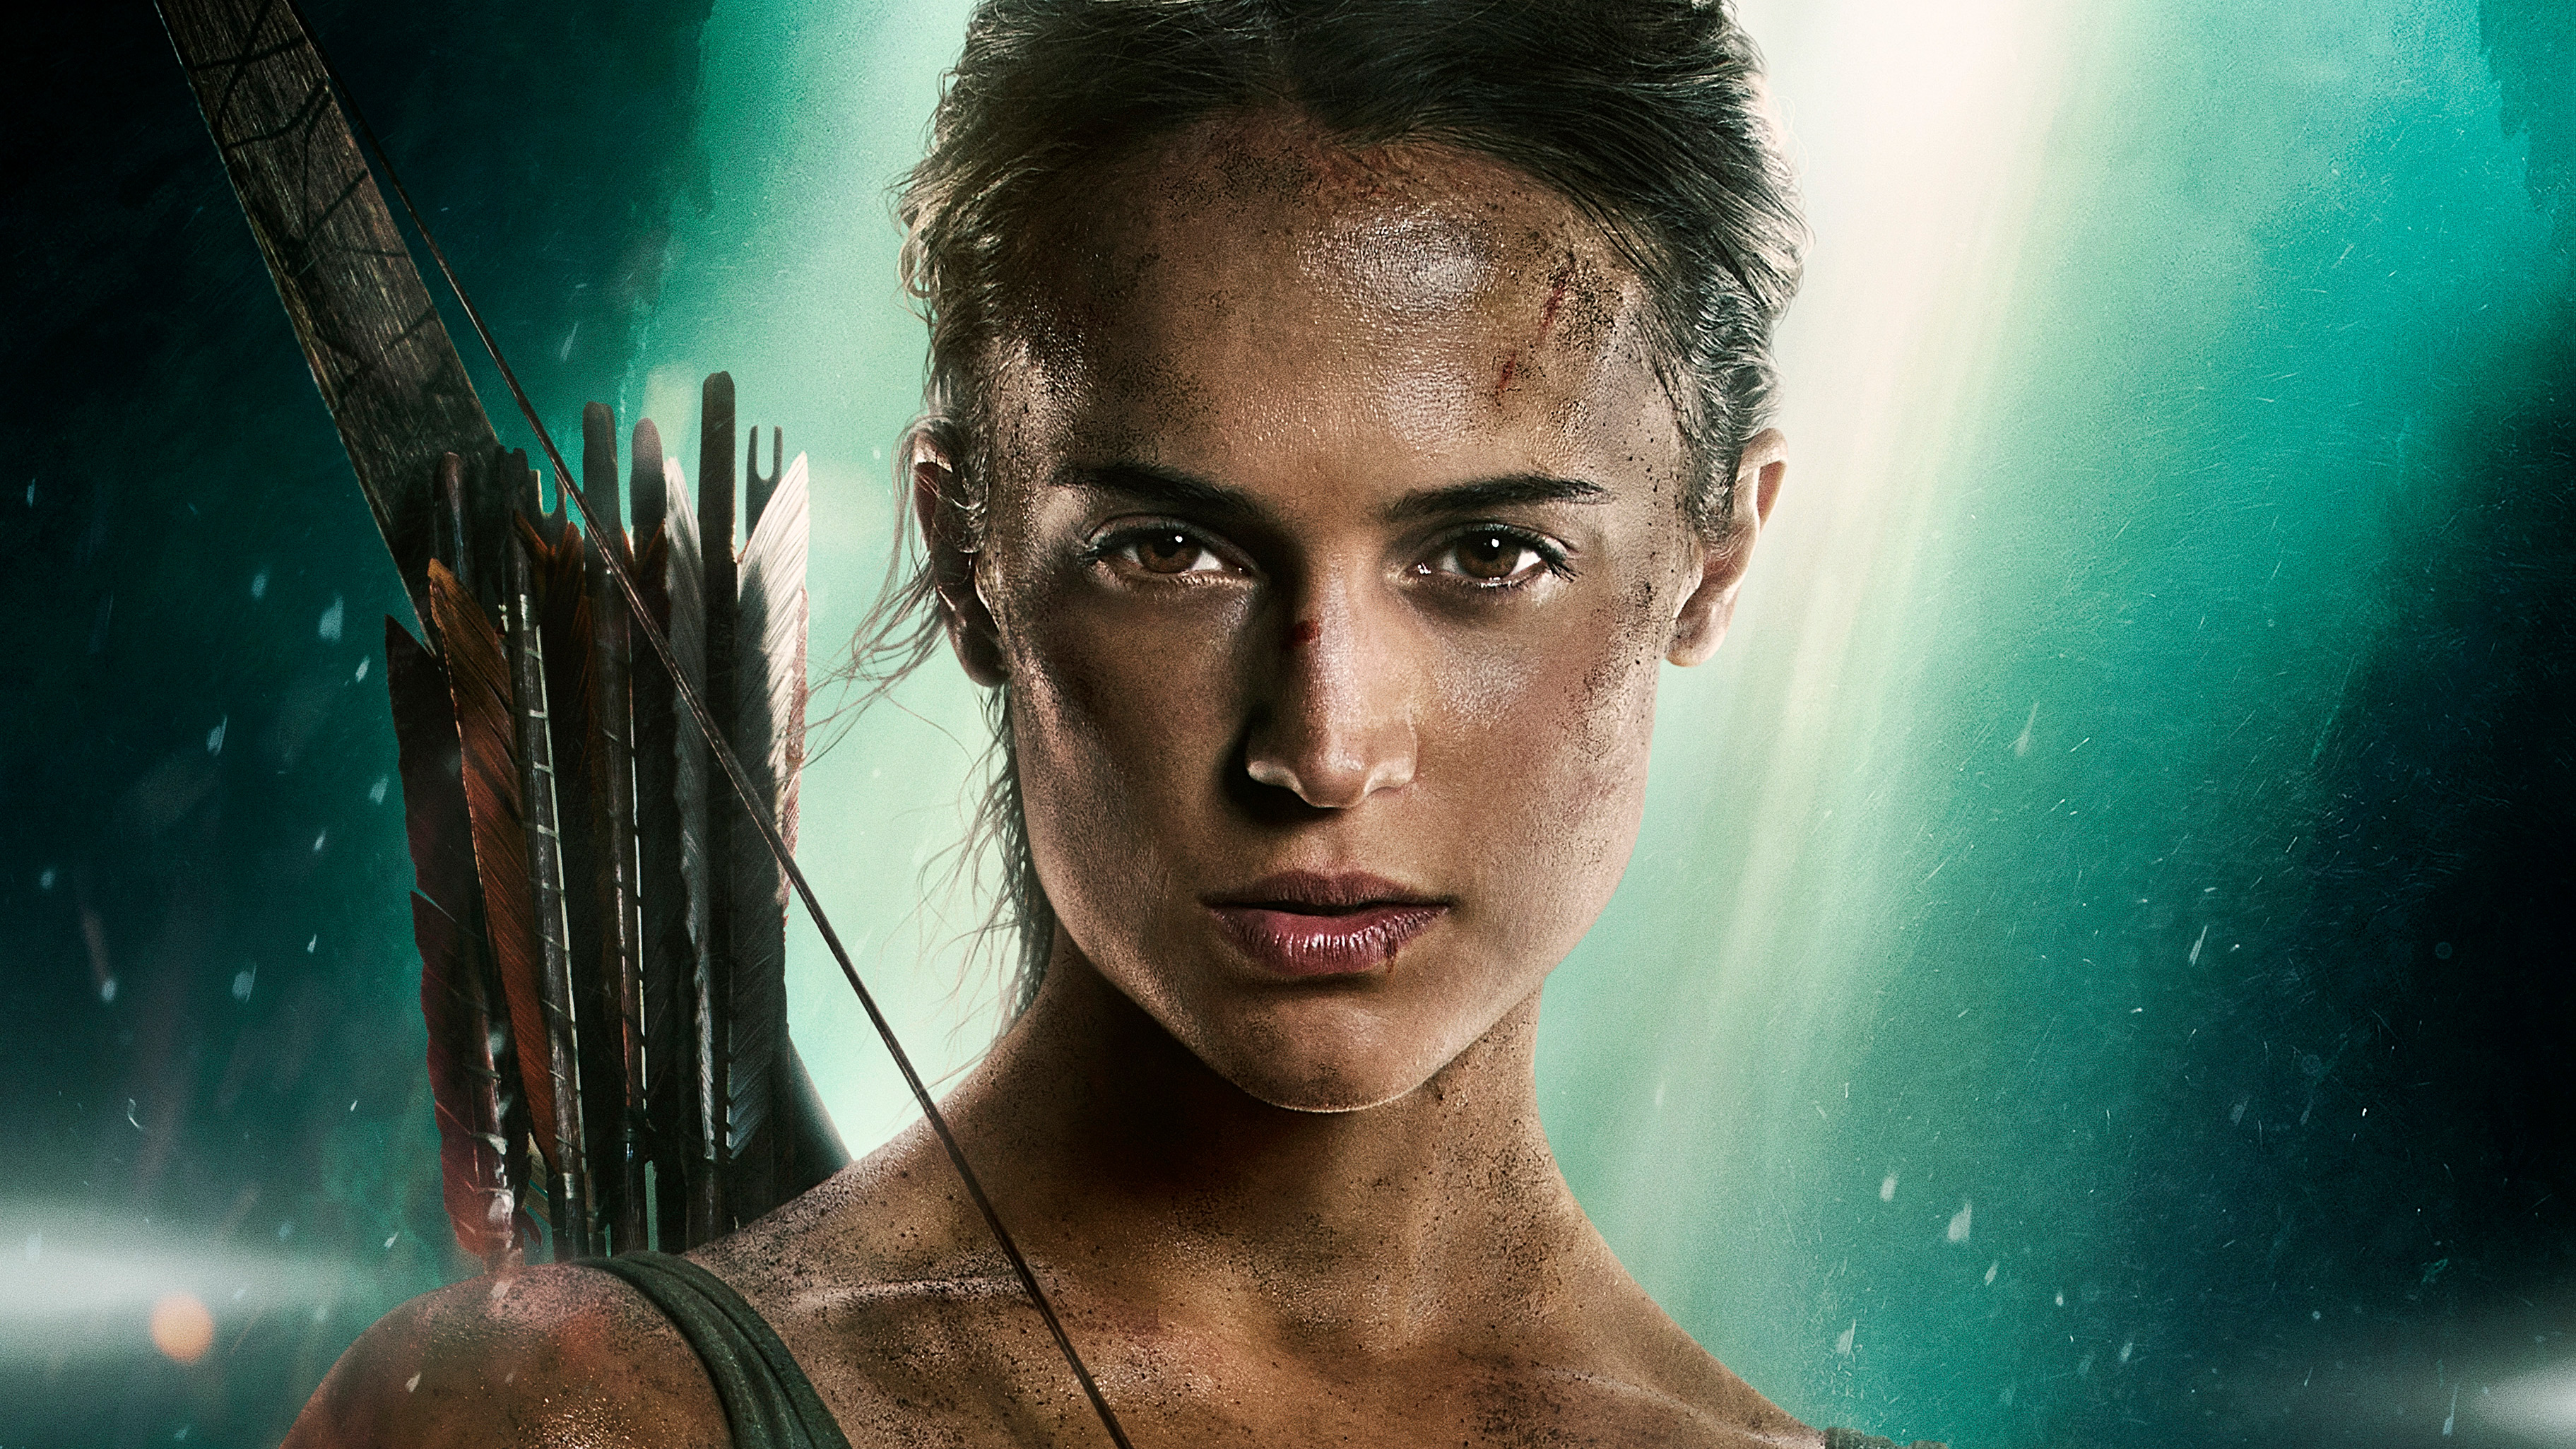 Alicia Vikander As Lara Croft In Tomb Raider 2018 Movie 4k Hd Movies 4k Wallpapers Images Backgrounds Photos And Pictures